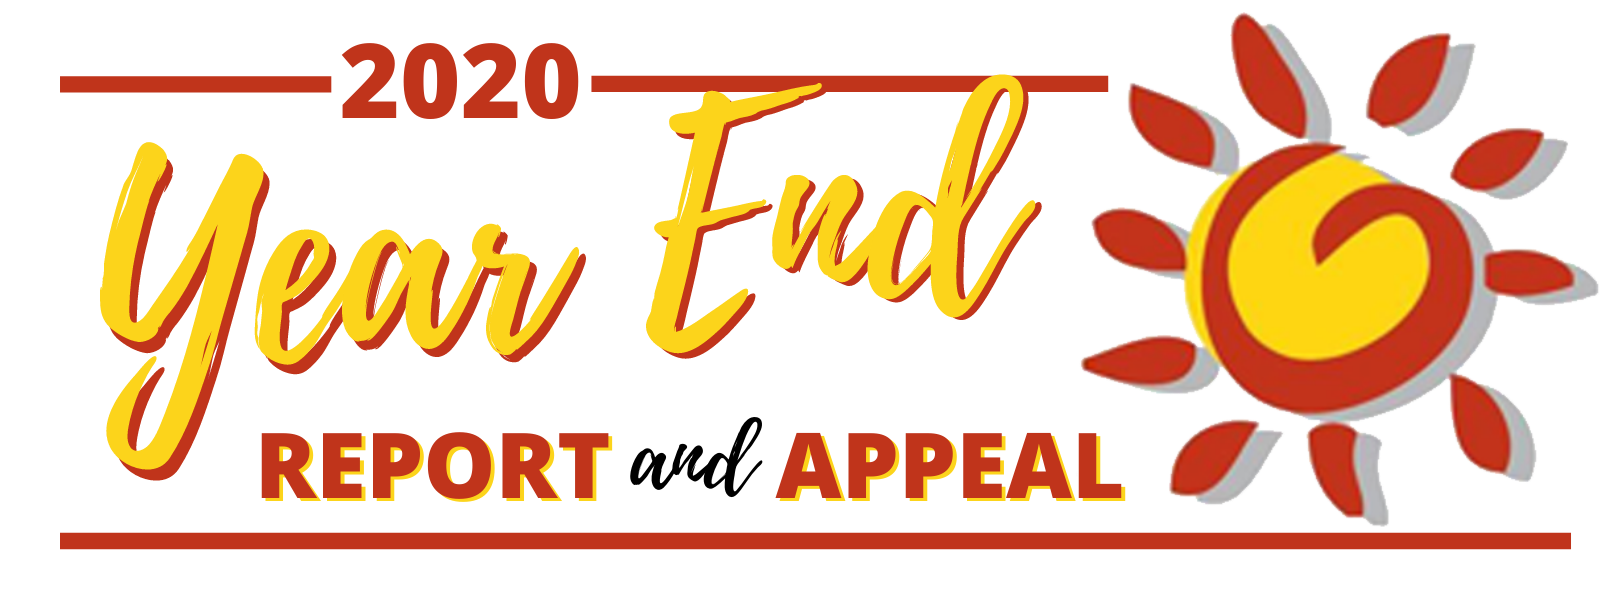 2020 Year End Report and Appeal